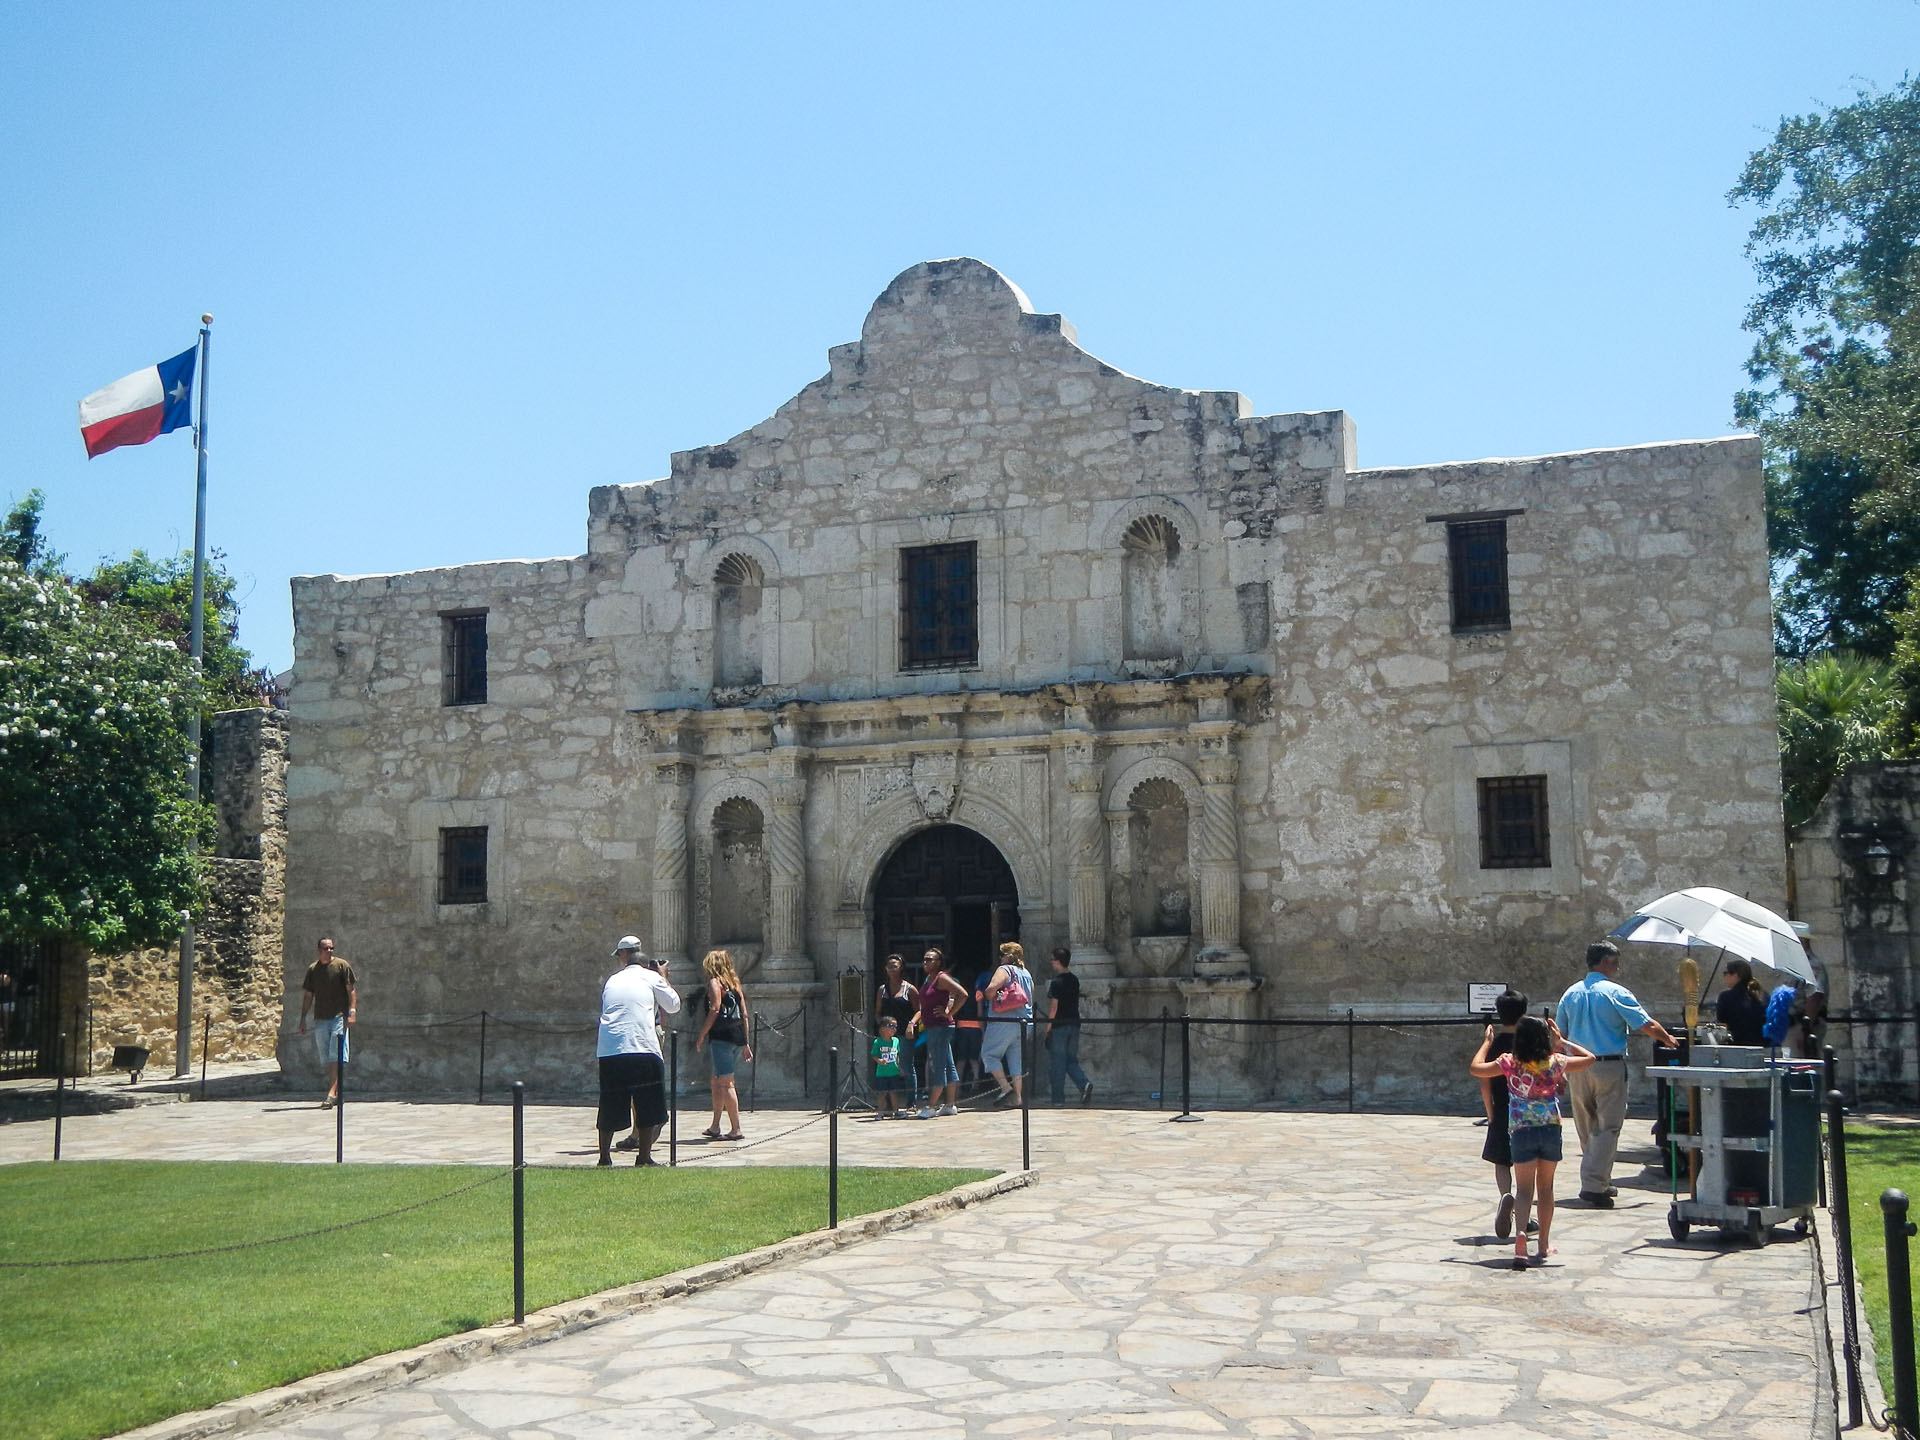 The Alamo San Antonio, TX